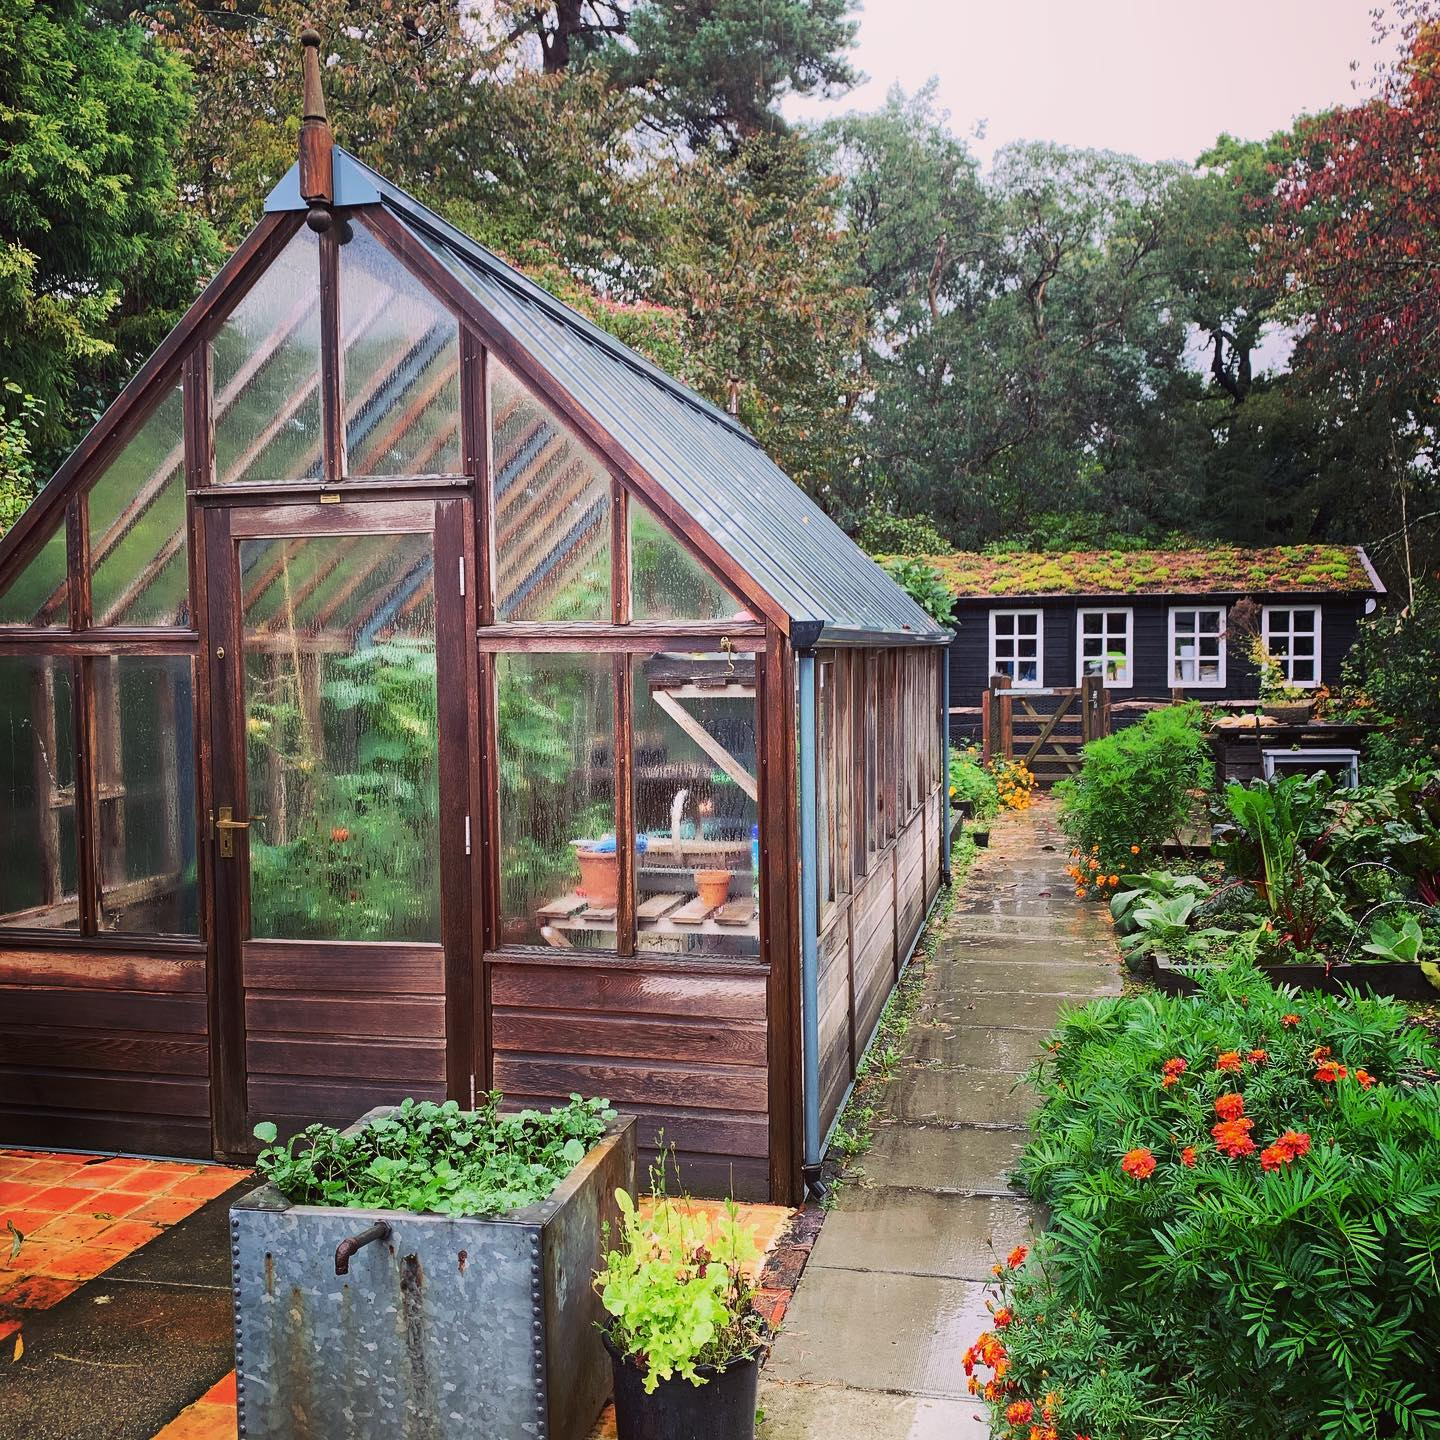 In my happy place on a wet Sunday sowing seeds, cafe del mar sunset sessions playing, steamy windows, mug of tea... Perfect! @gabrielash1 greenhouses